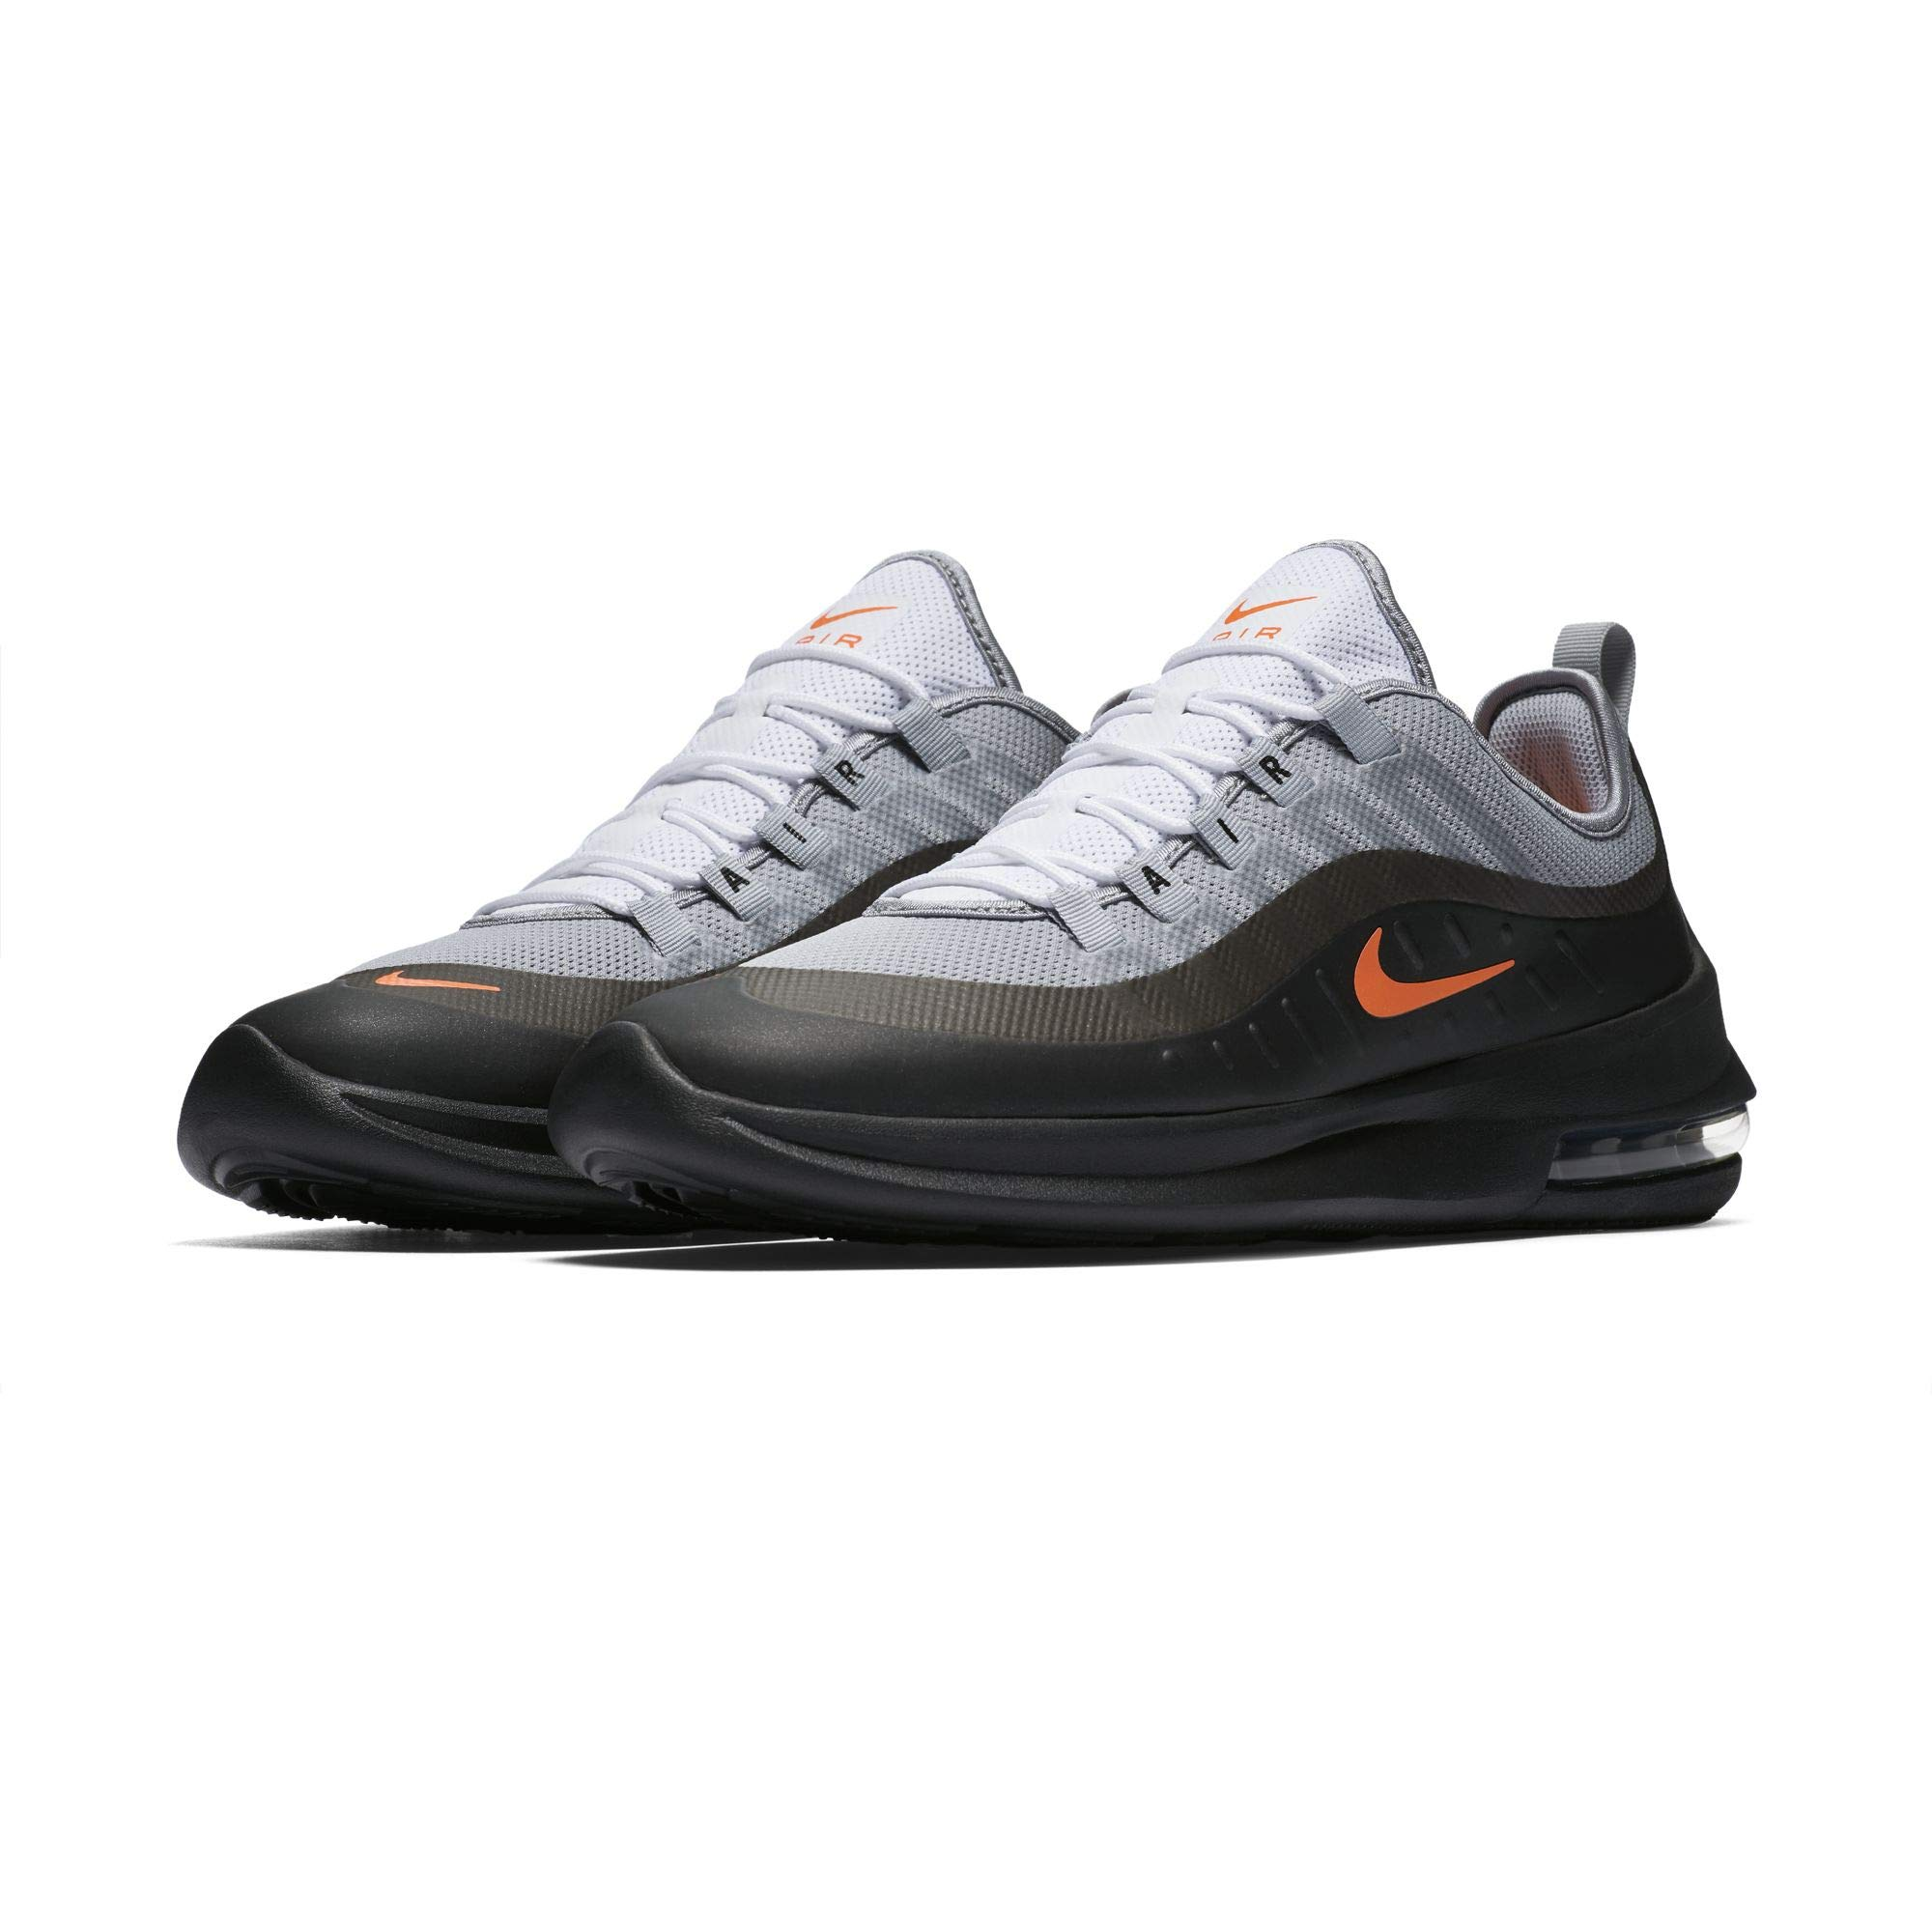 premium selection 27e0e 41304 Galleon - Nike Men s Air Max Axis Running Shoe, Wolf Grey Total Crimson  Black Anthracite, Size 9.5